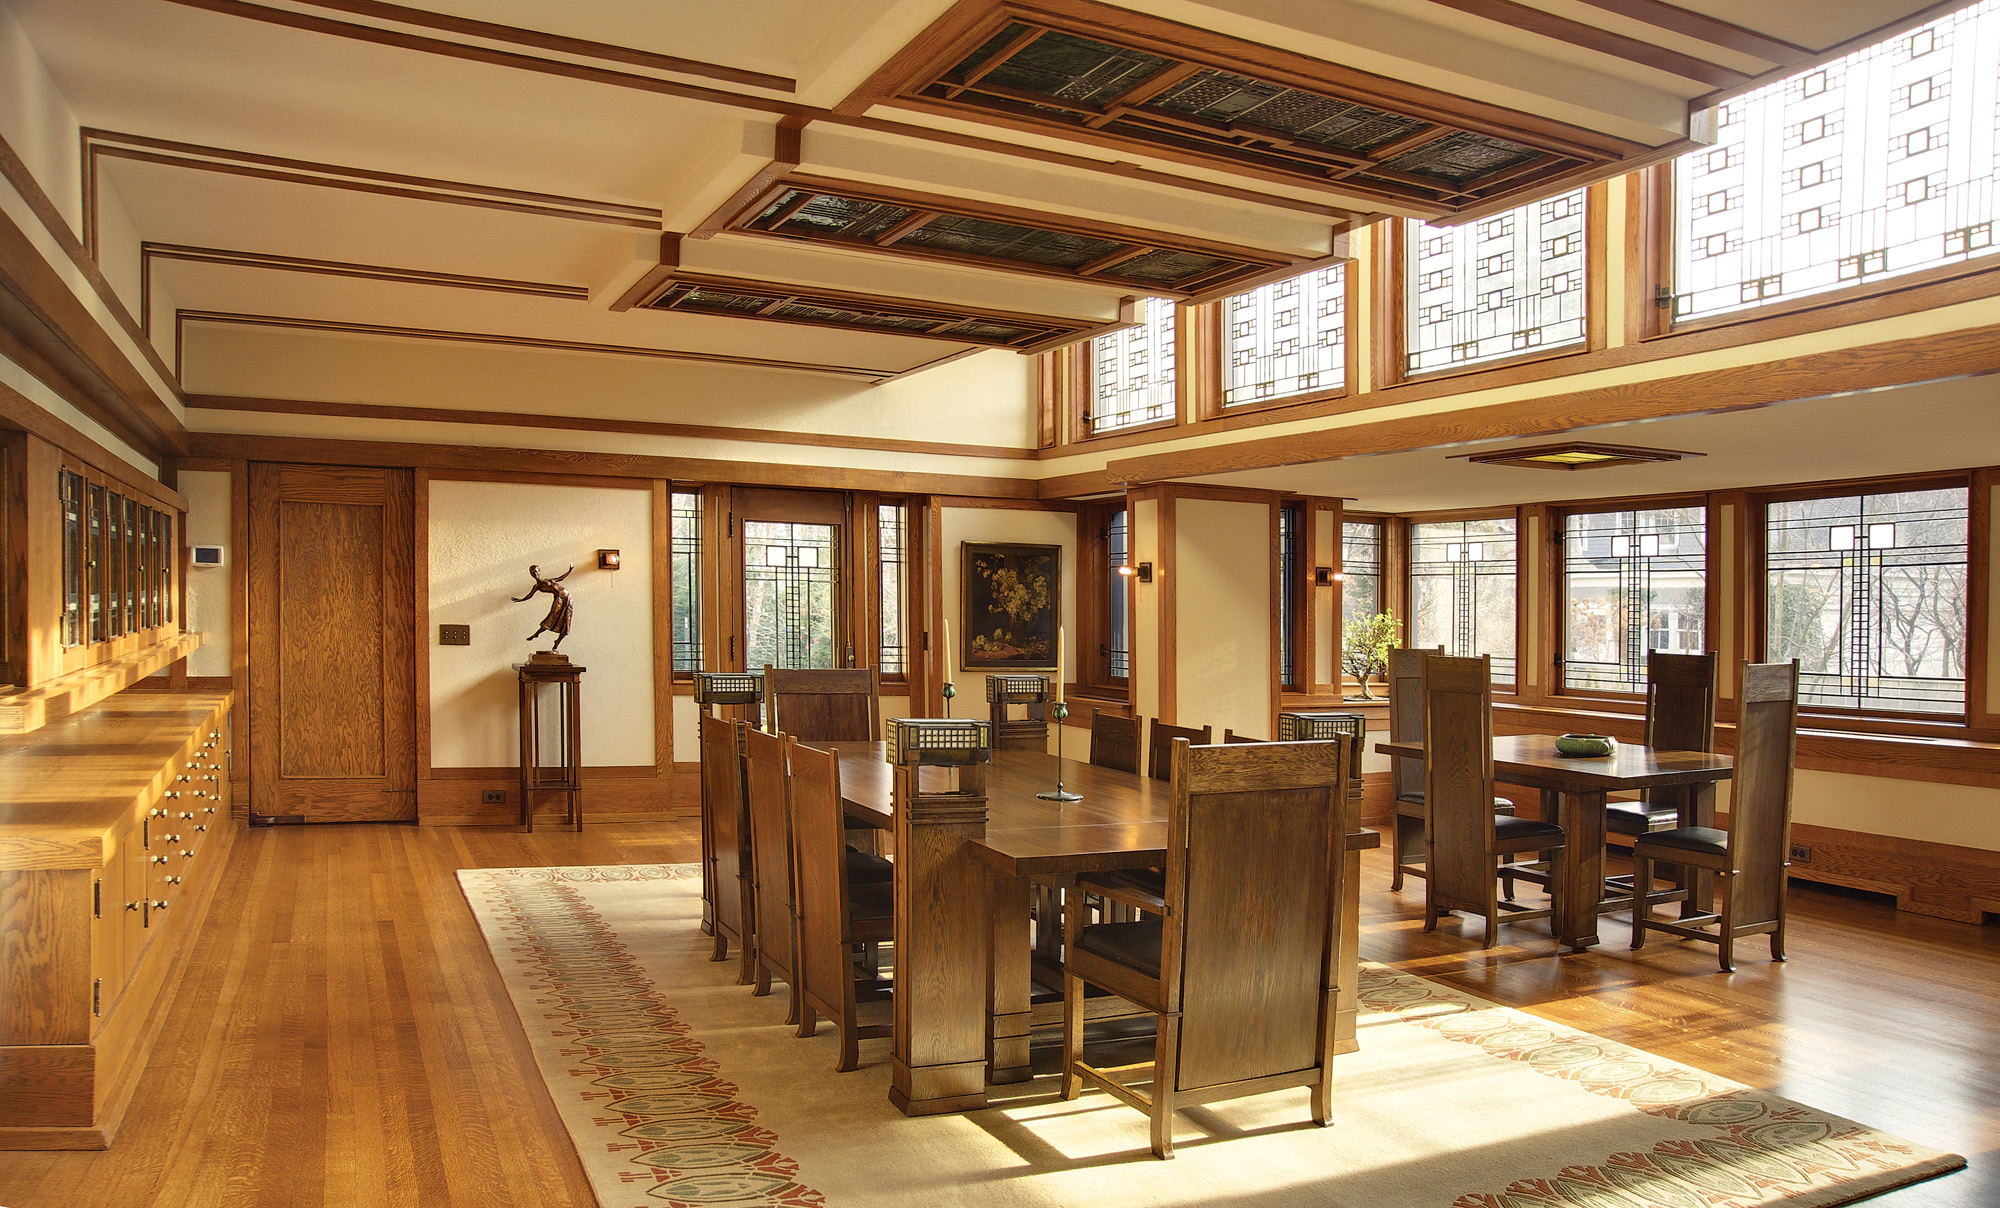 The dining room is the focal point of the home. Leaded windows and art glass in the doors of the built-in server took 3,000 pieces of glass. The Wright-designed tables and chairs remain in the space he designed 109 years ago.